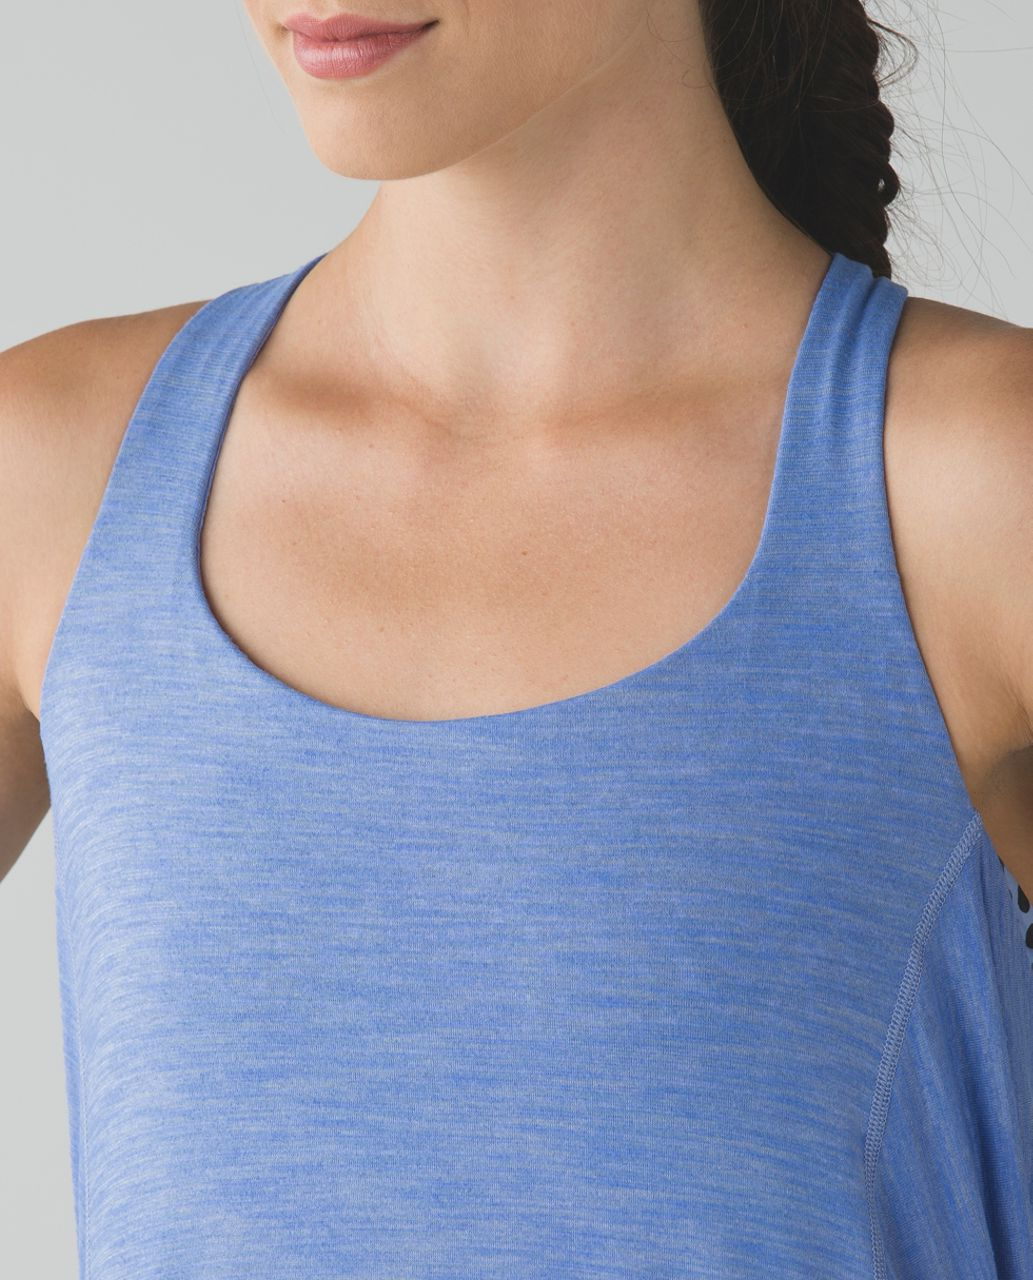 Lululemon Wild Tank - Heathered Lullaby / Ace Spot Lullaby Black / Lullaby